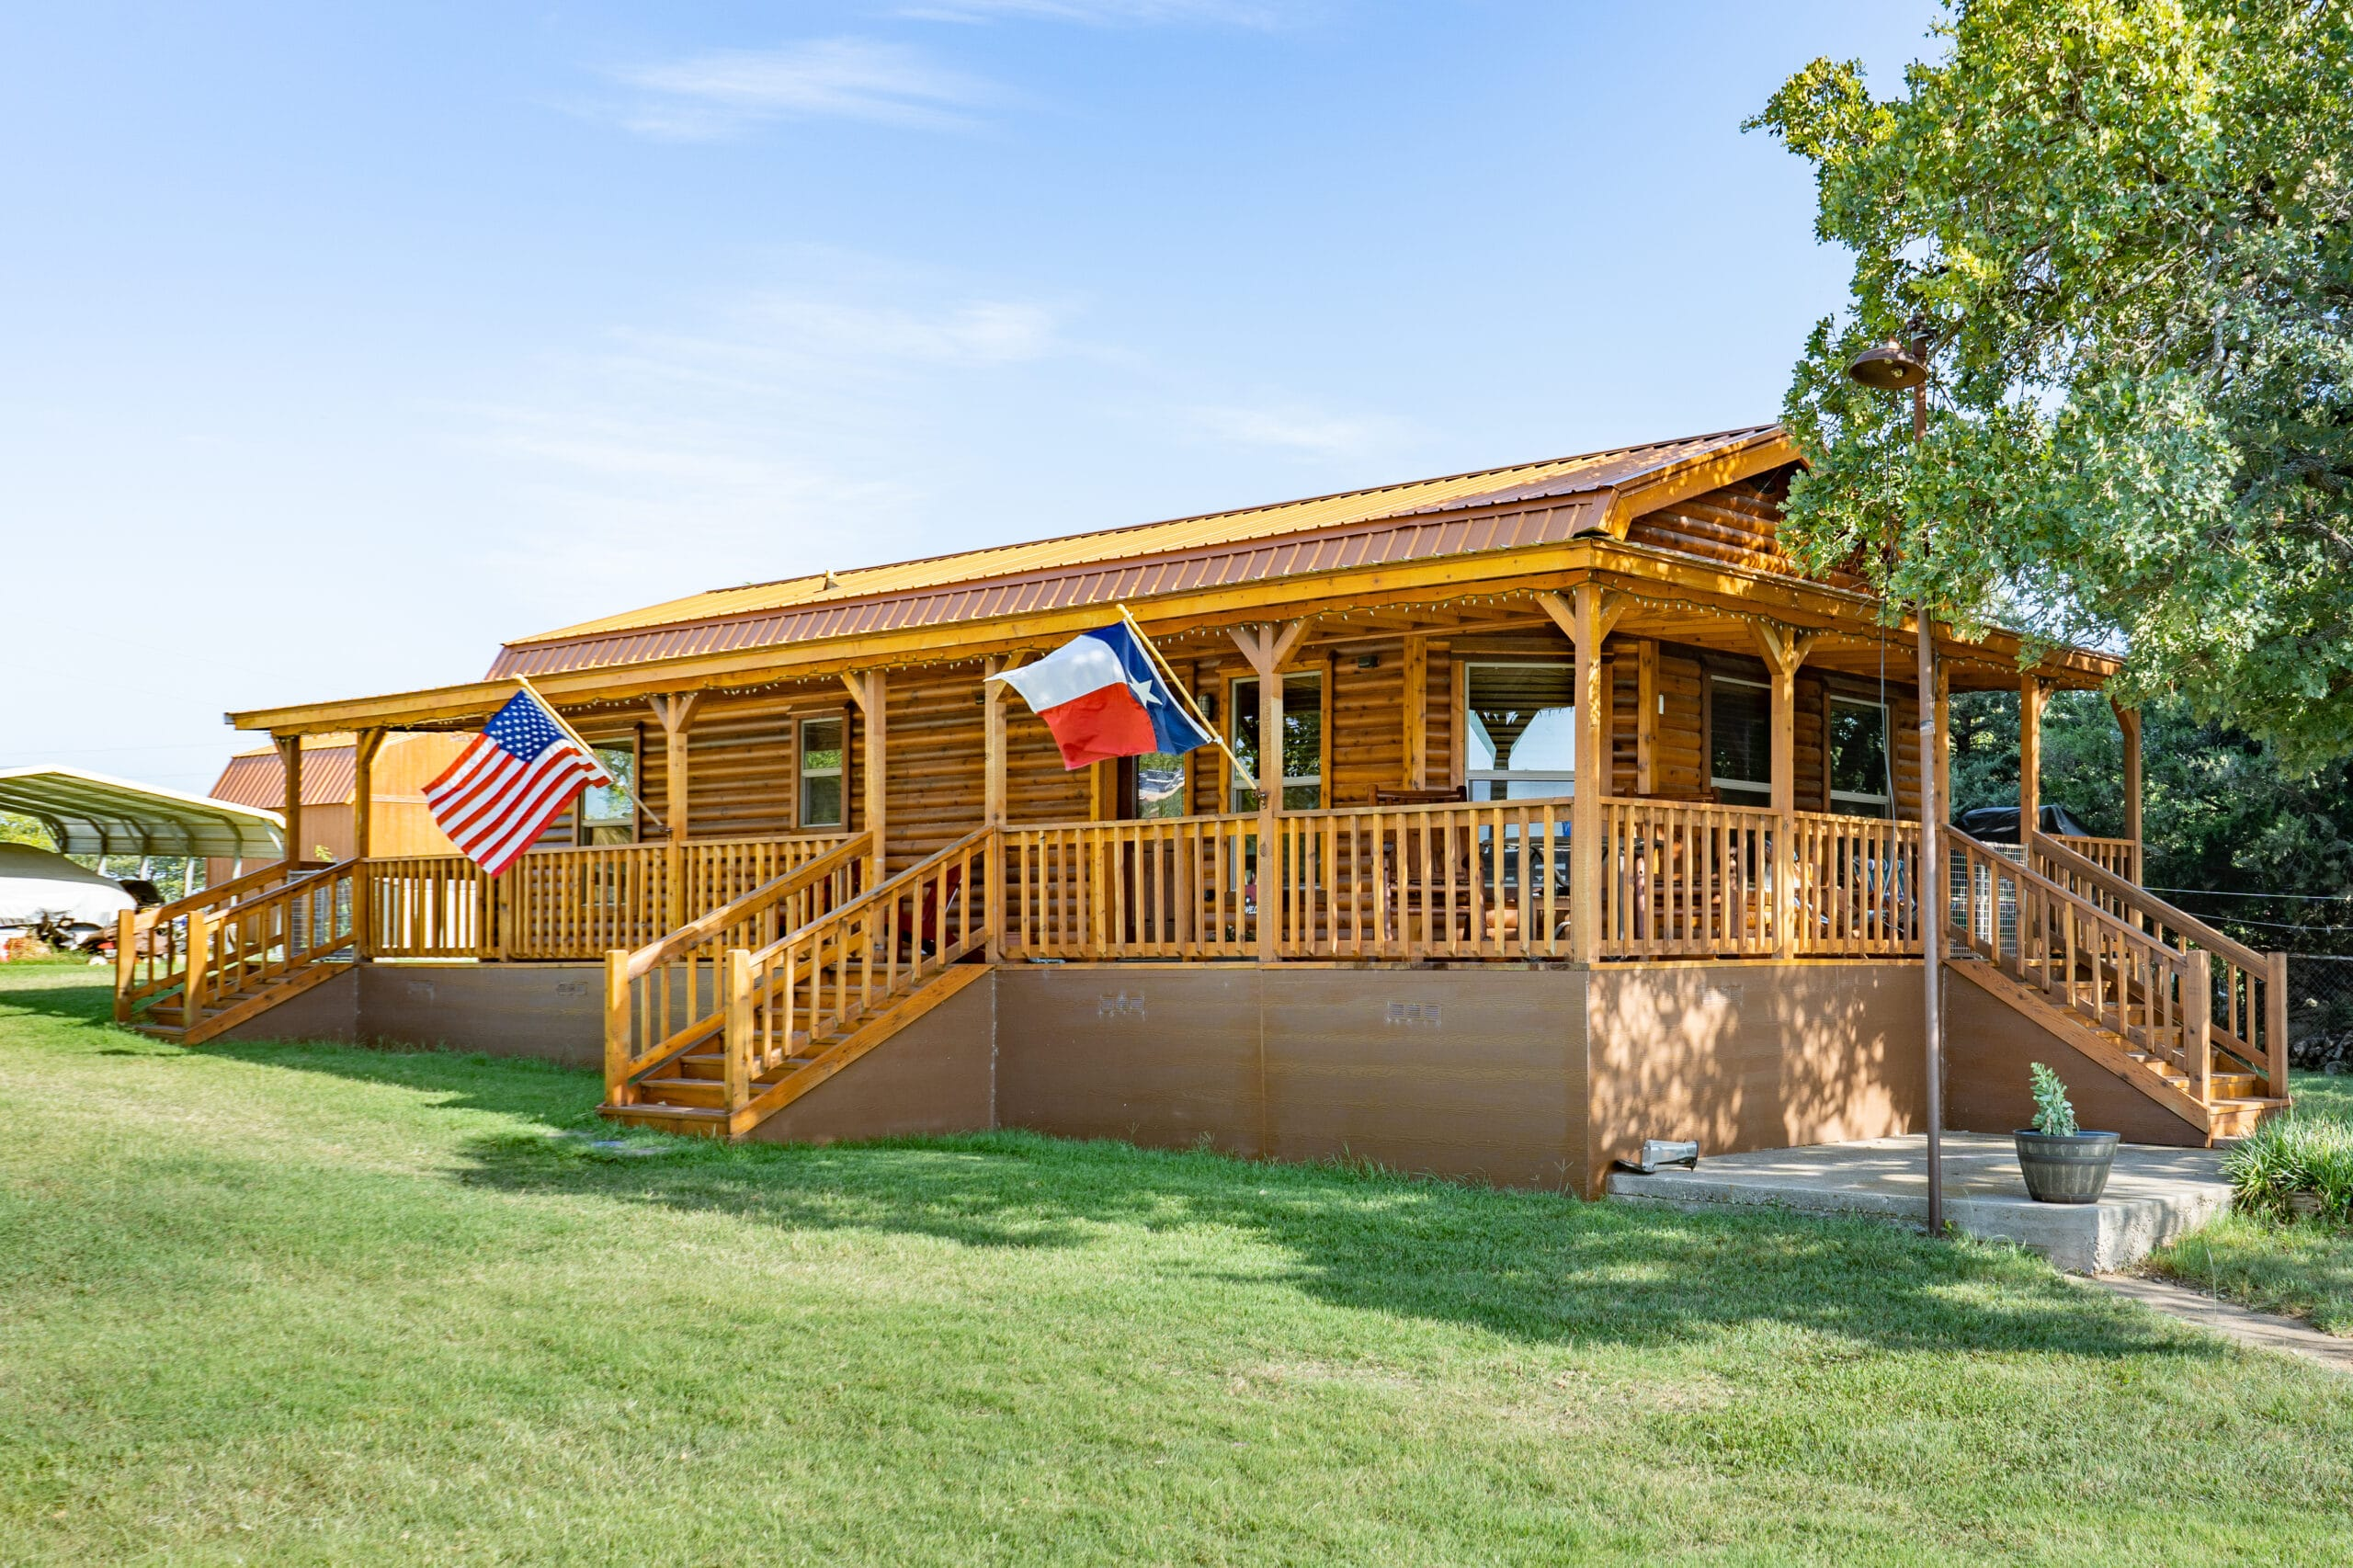 Big Porch is Awesome on Their Lake House